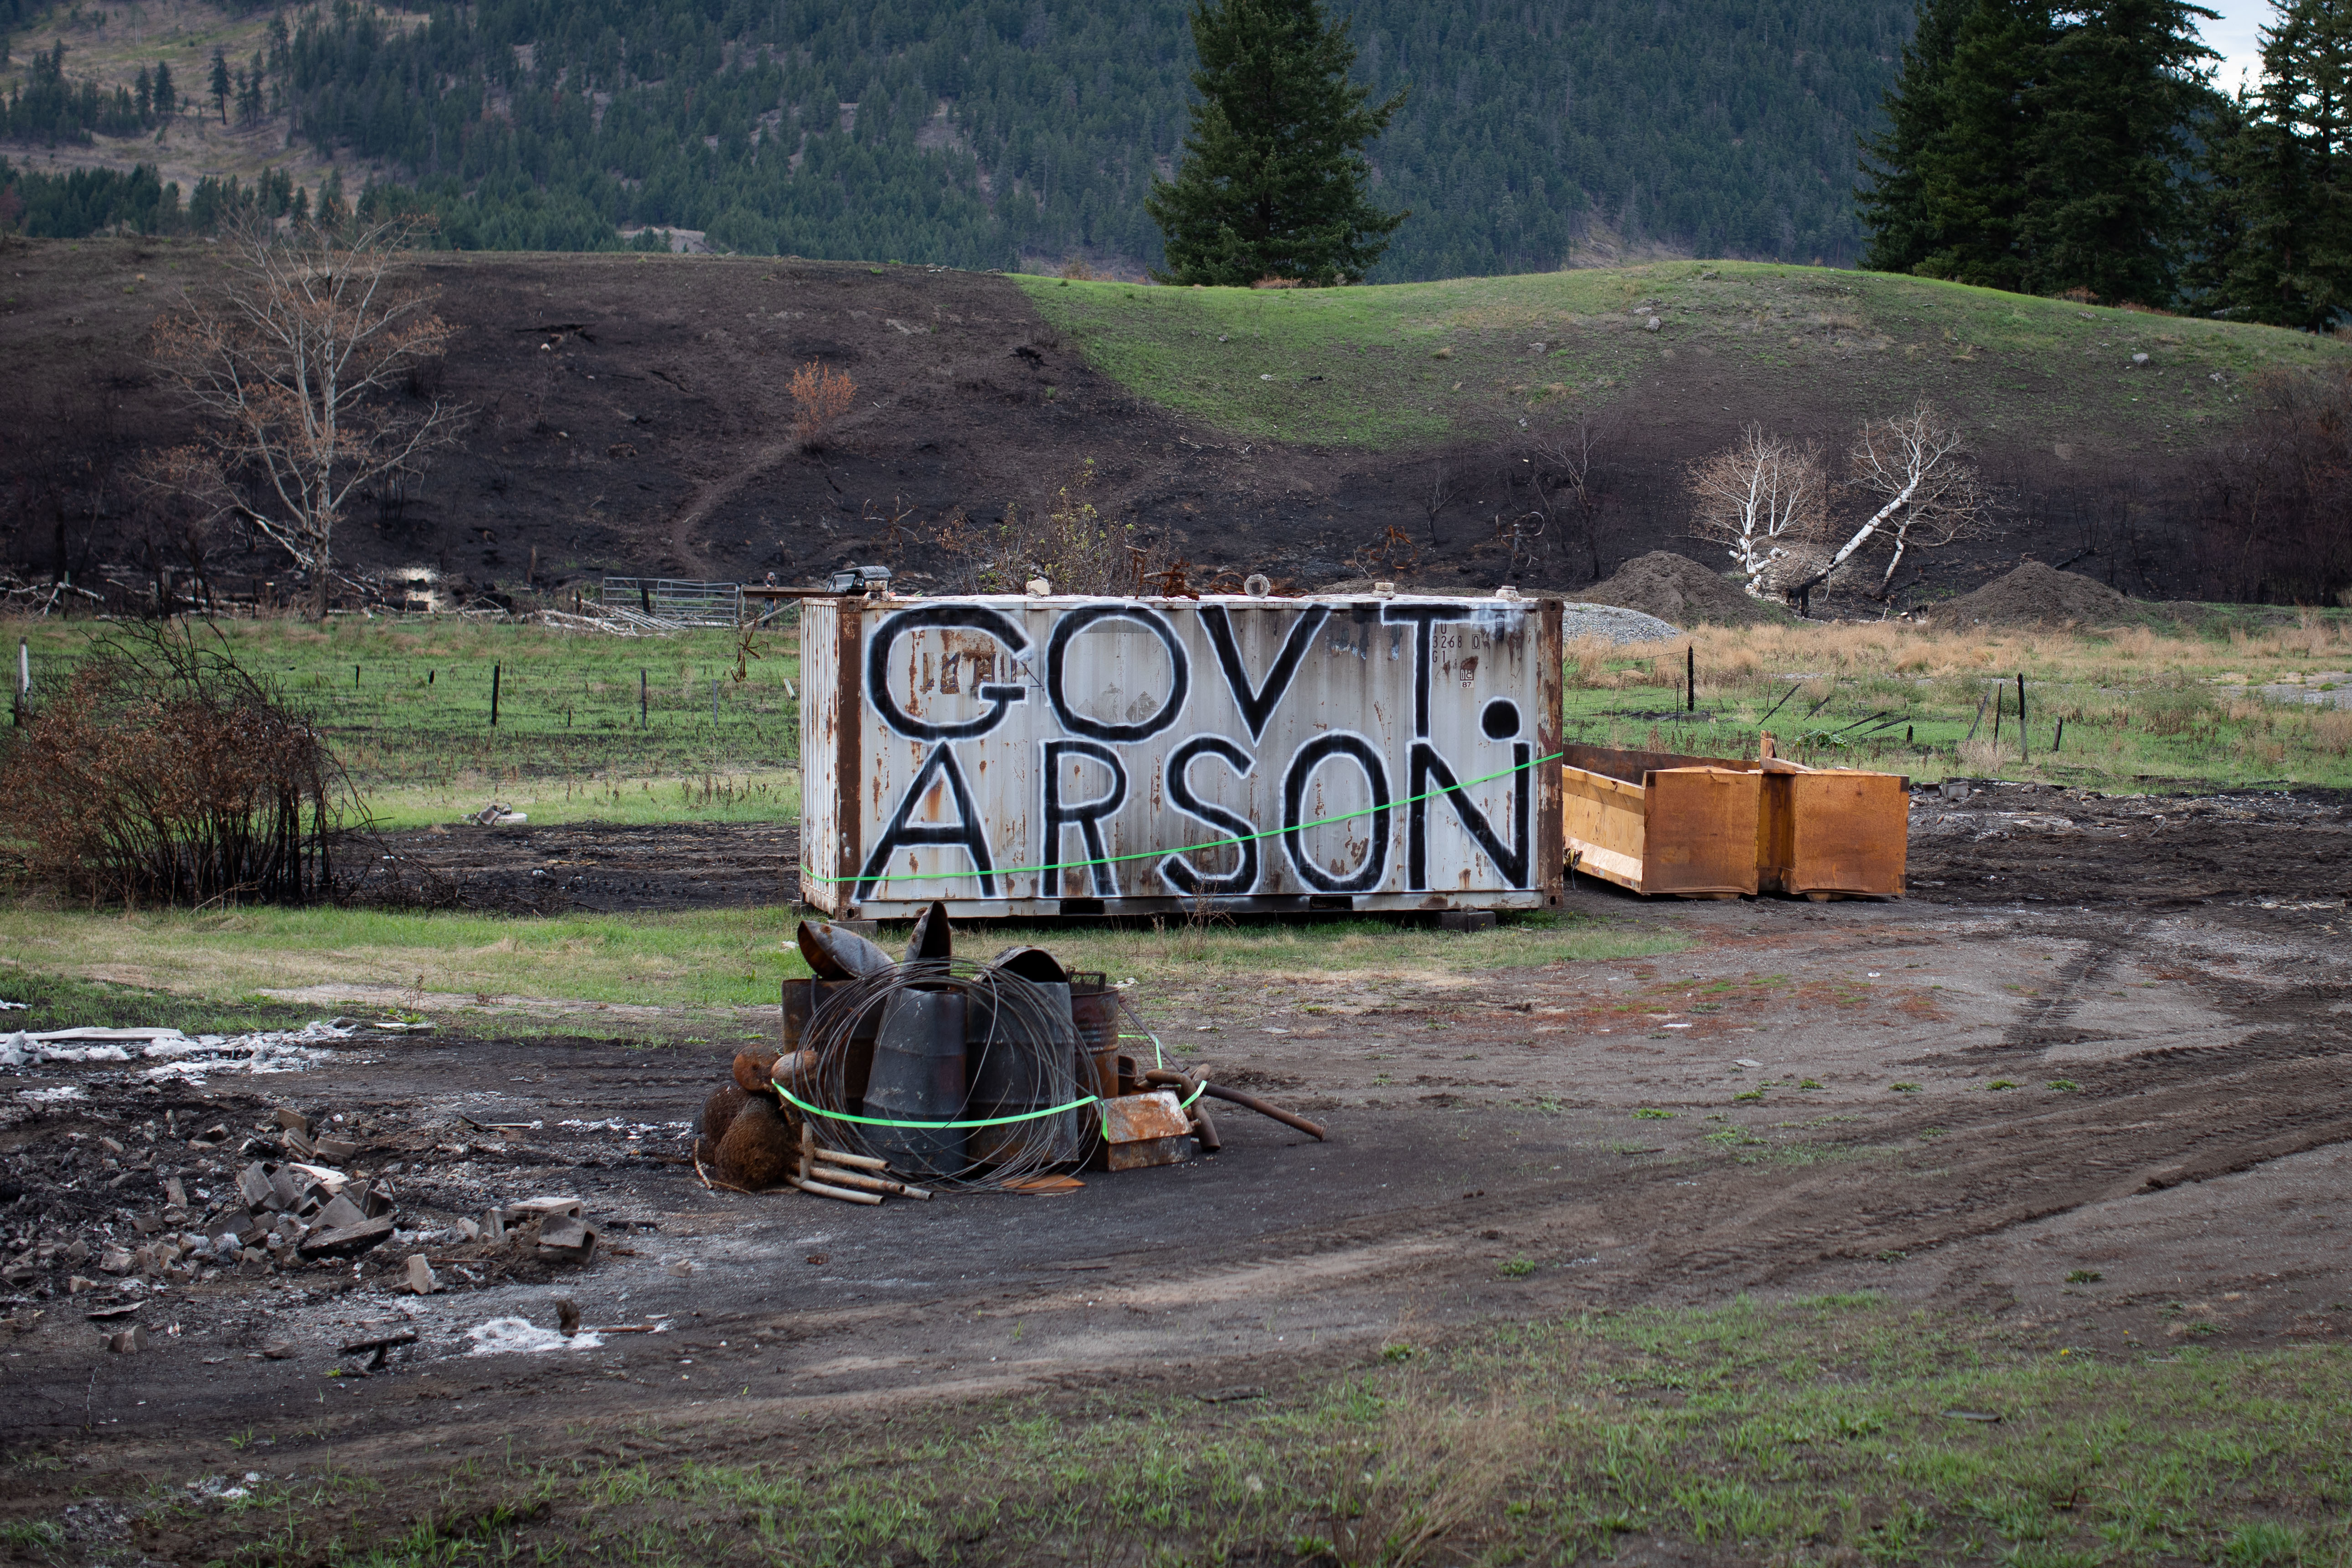 An anti-government message is written on the side of a shipping container near the remnants of a burned-down trailer home in Monte Lake, B.C., on Sept. 1. (Maggie MacPherson/CBC)